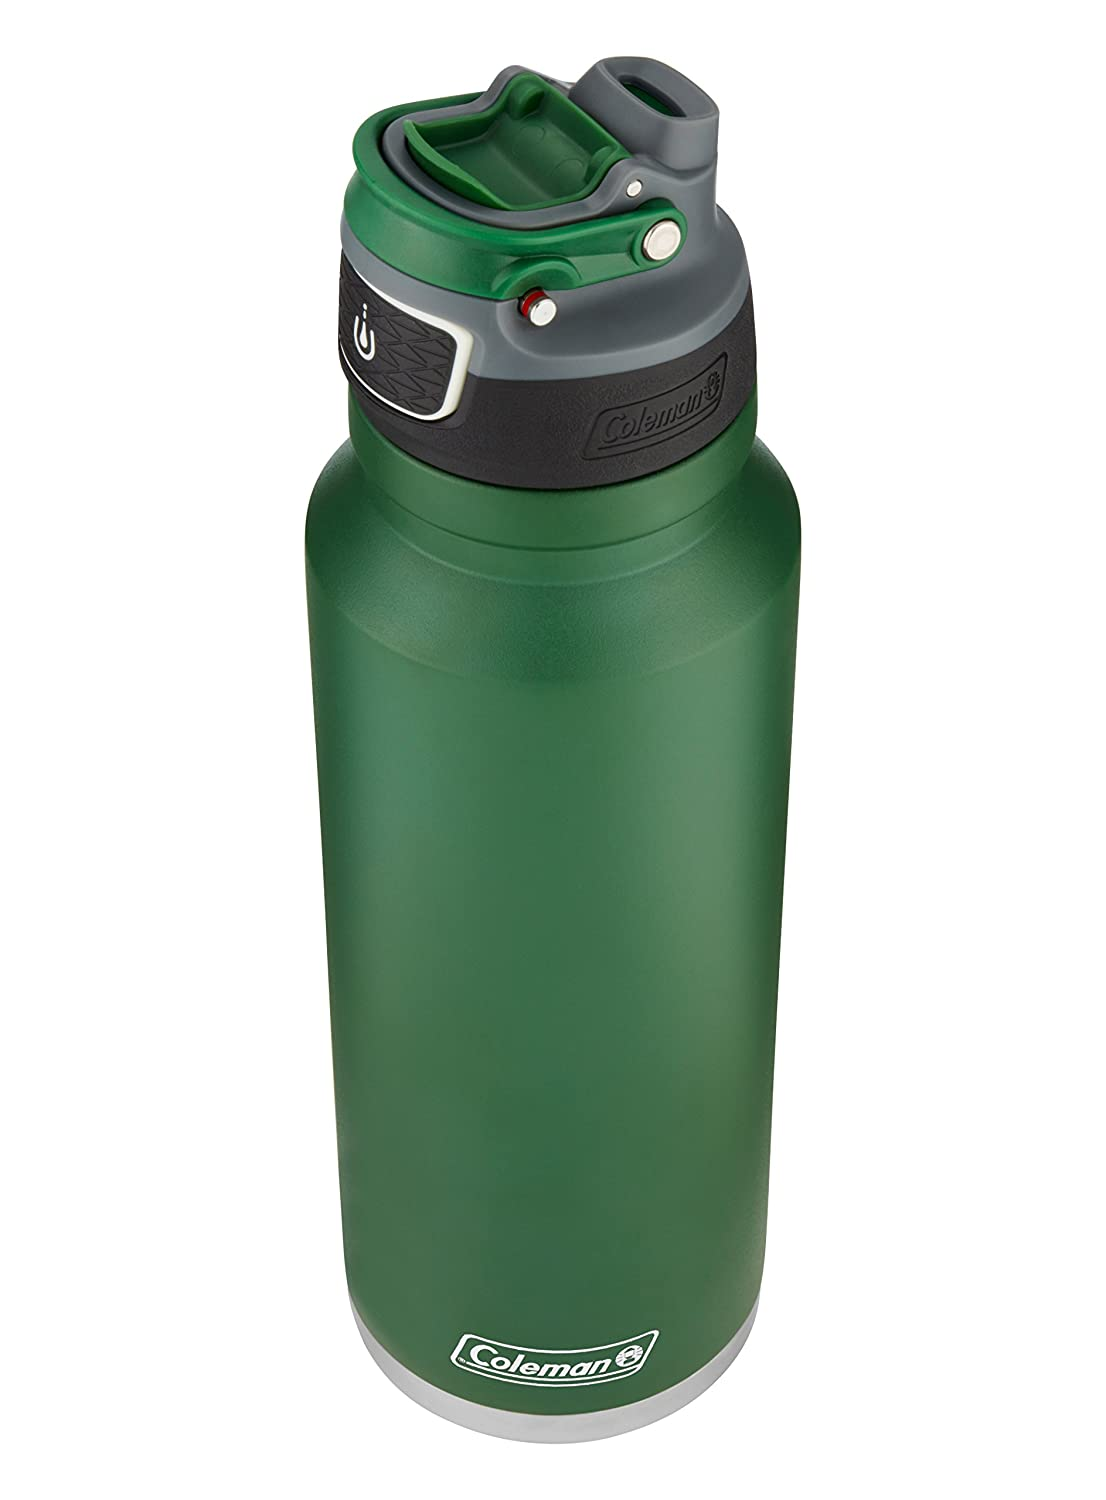 Coleman FreeFlow AUTOSEAL Insulated Stainless Steel Water Bottle Black 24 oz. The Coleman Company Inc.